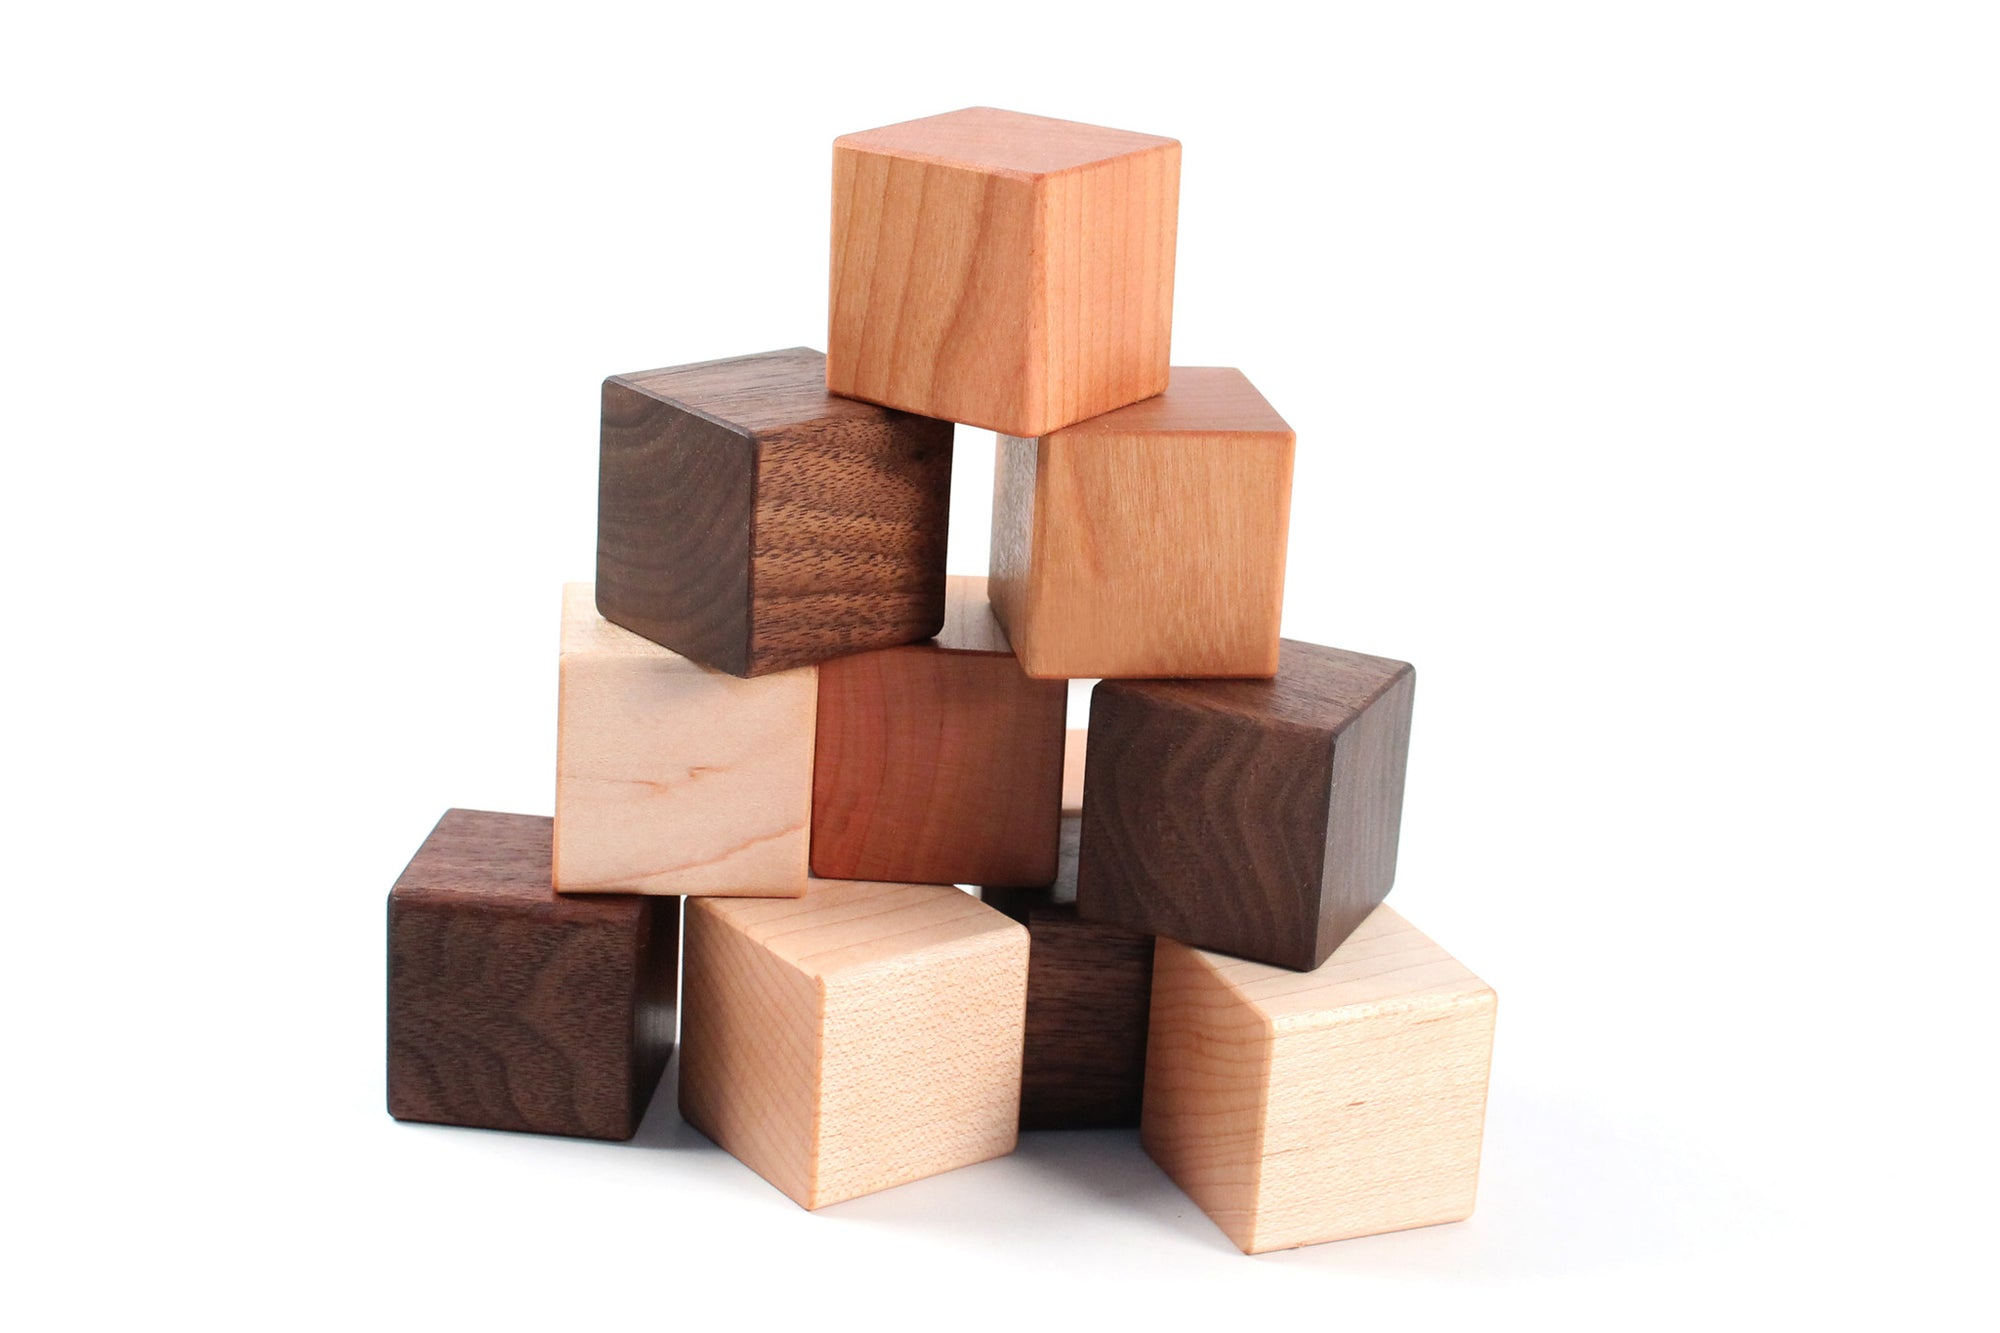 12-piece basic block set